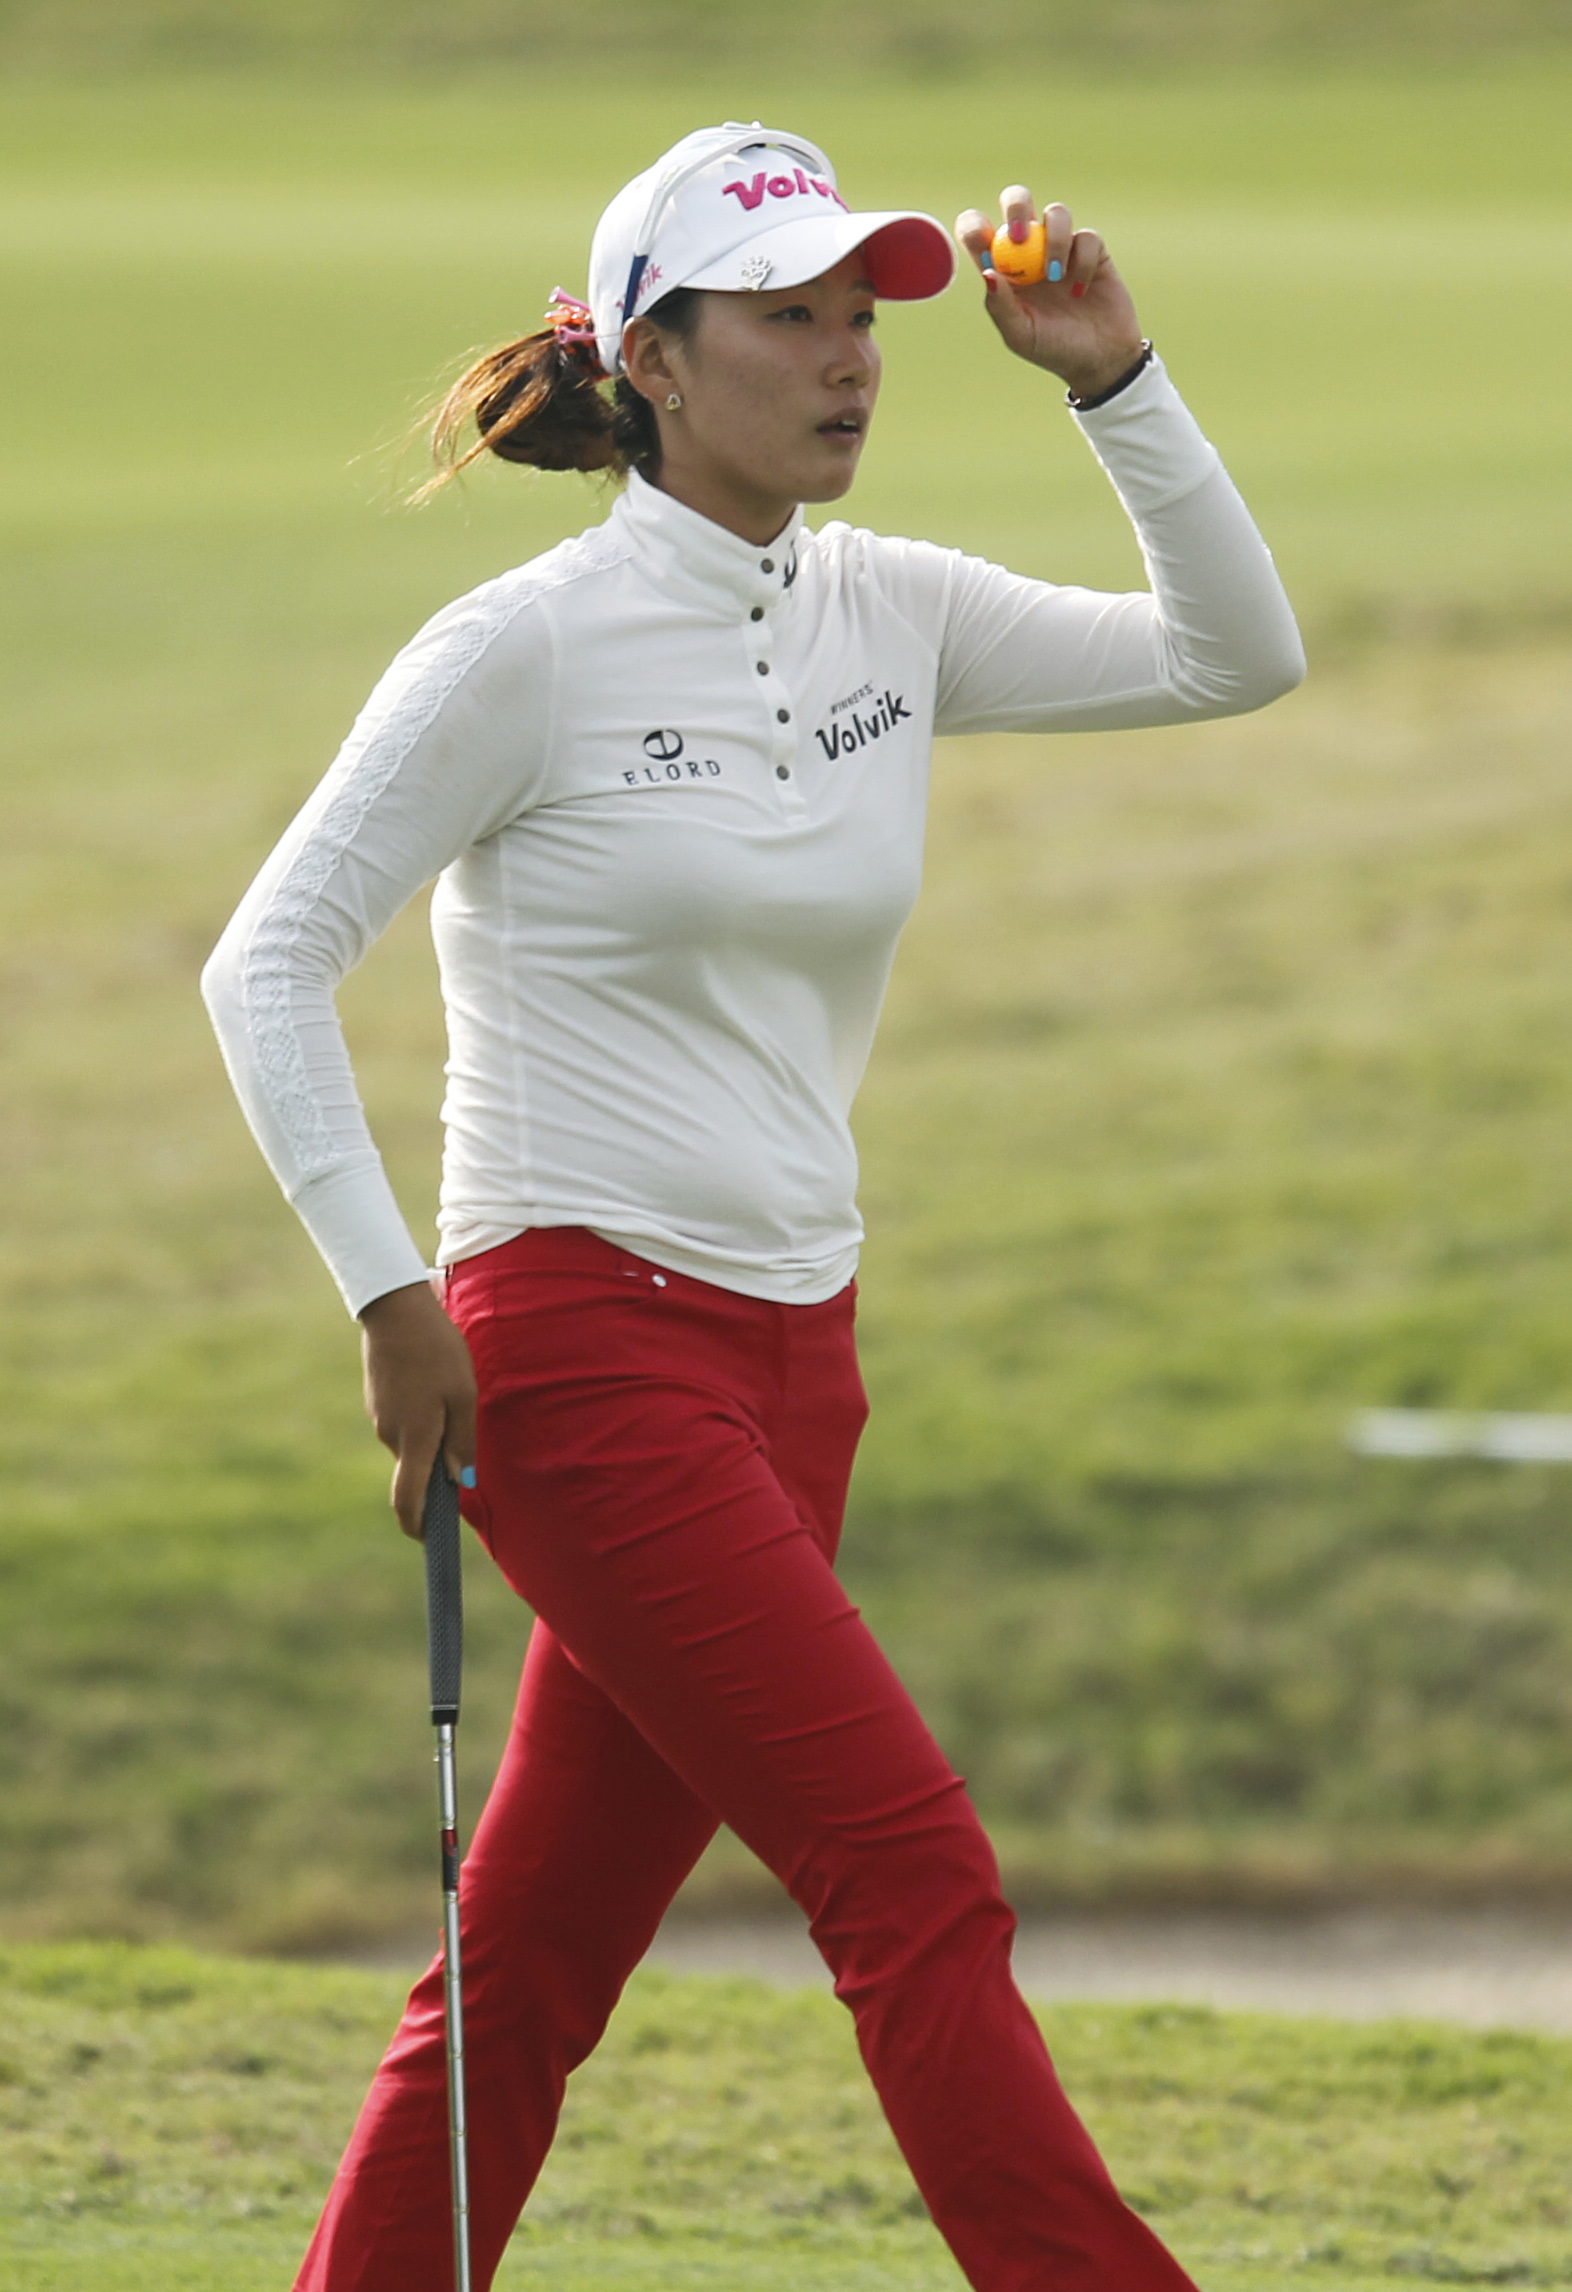 Chella Choi of South Korea waves with her ball as she finished the 18th hole during the second day of the Sunrise LPGA Taiwan Championship tournament at the Sunrise Golf & Country Club, Friday, Oct. 25, 2013, in Yangmei, north eastern Taiwan. Choi finished in 6th position carding an even par at 72